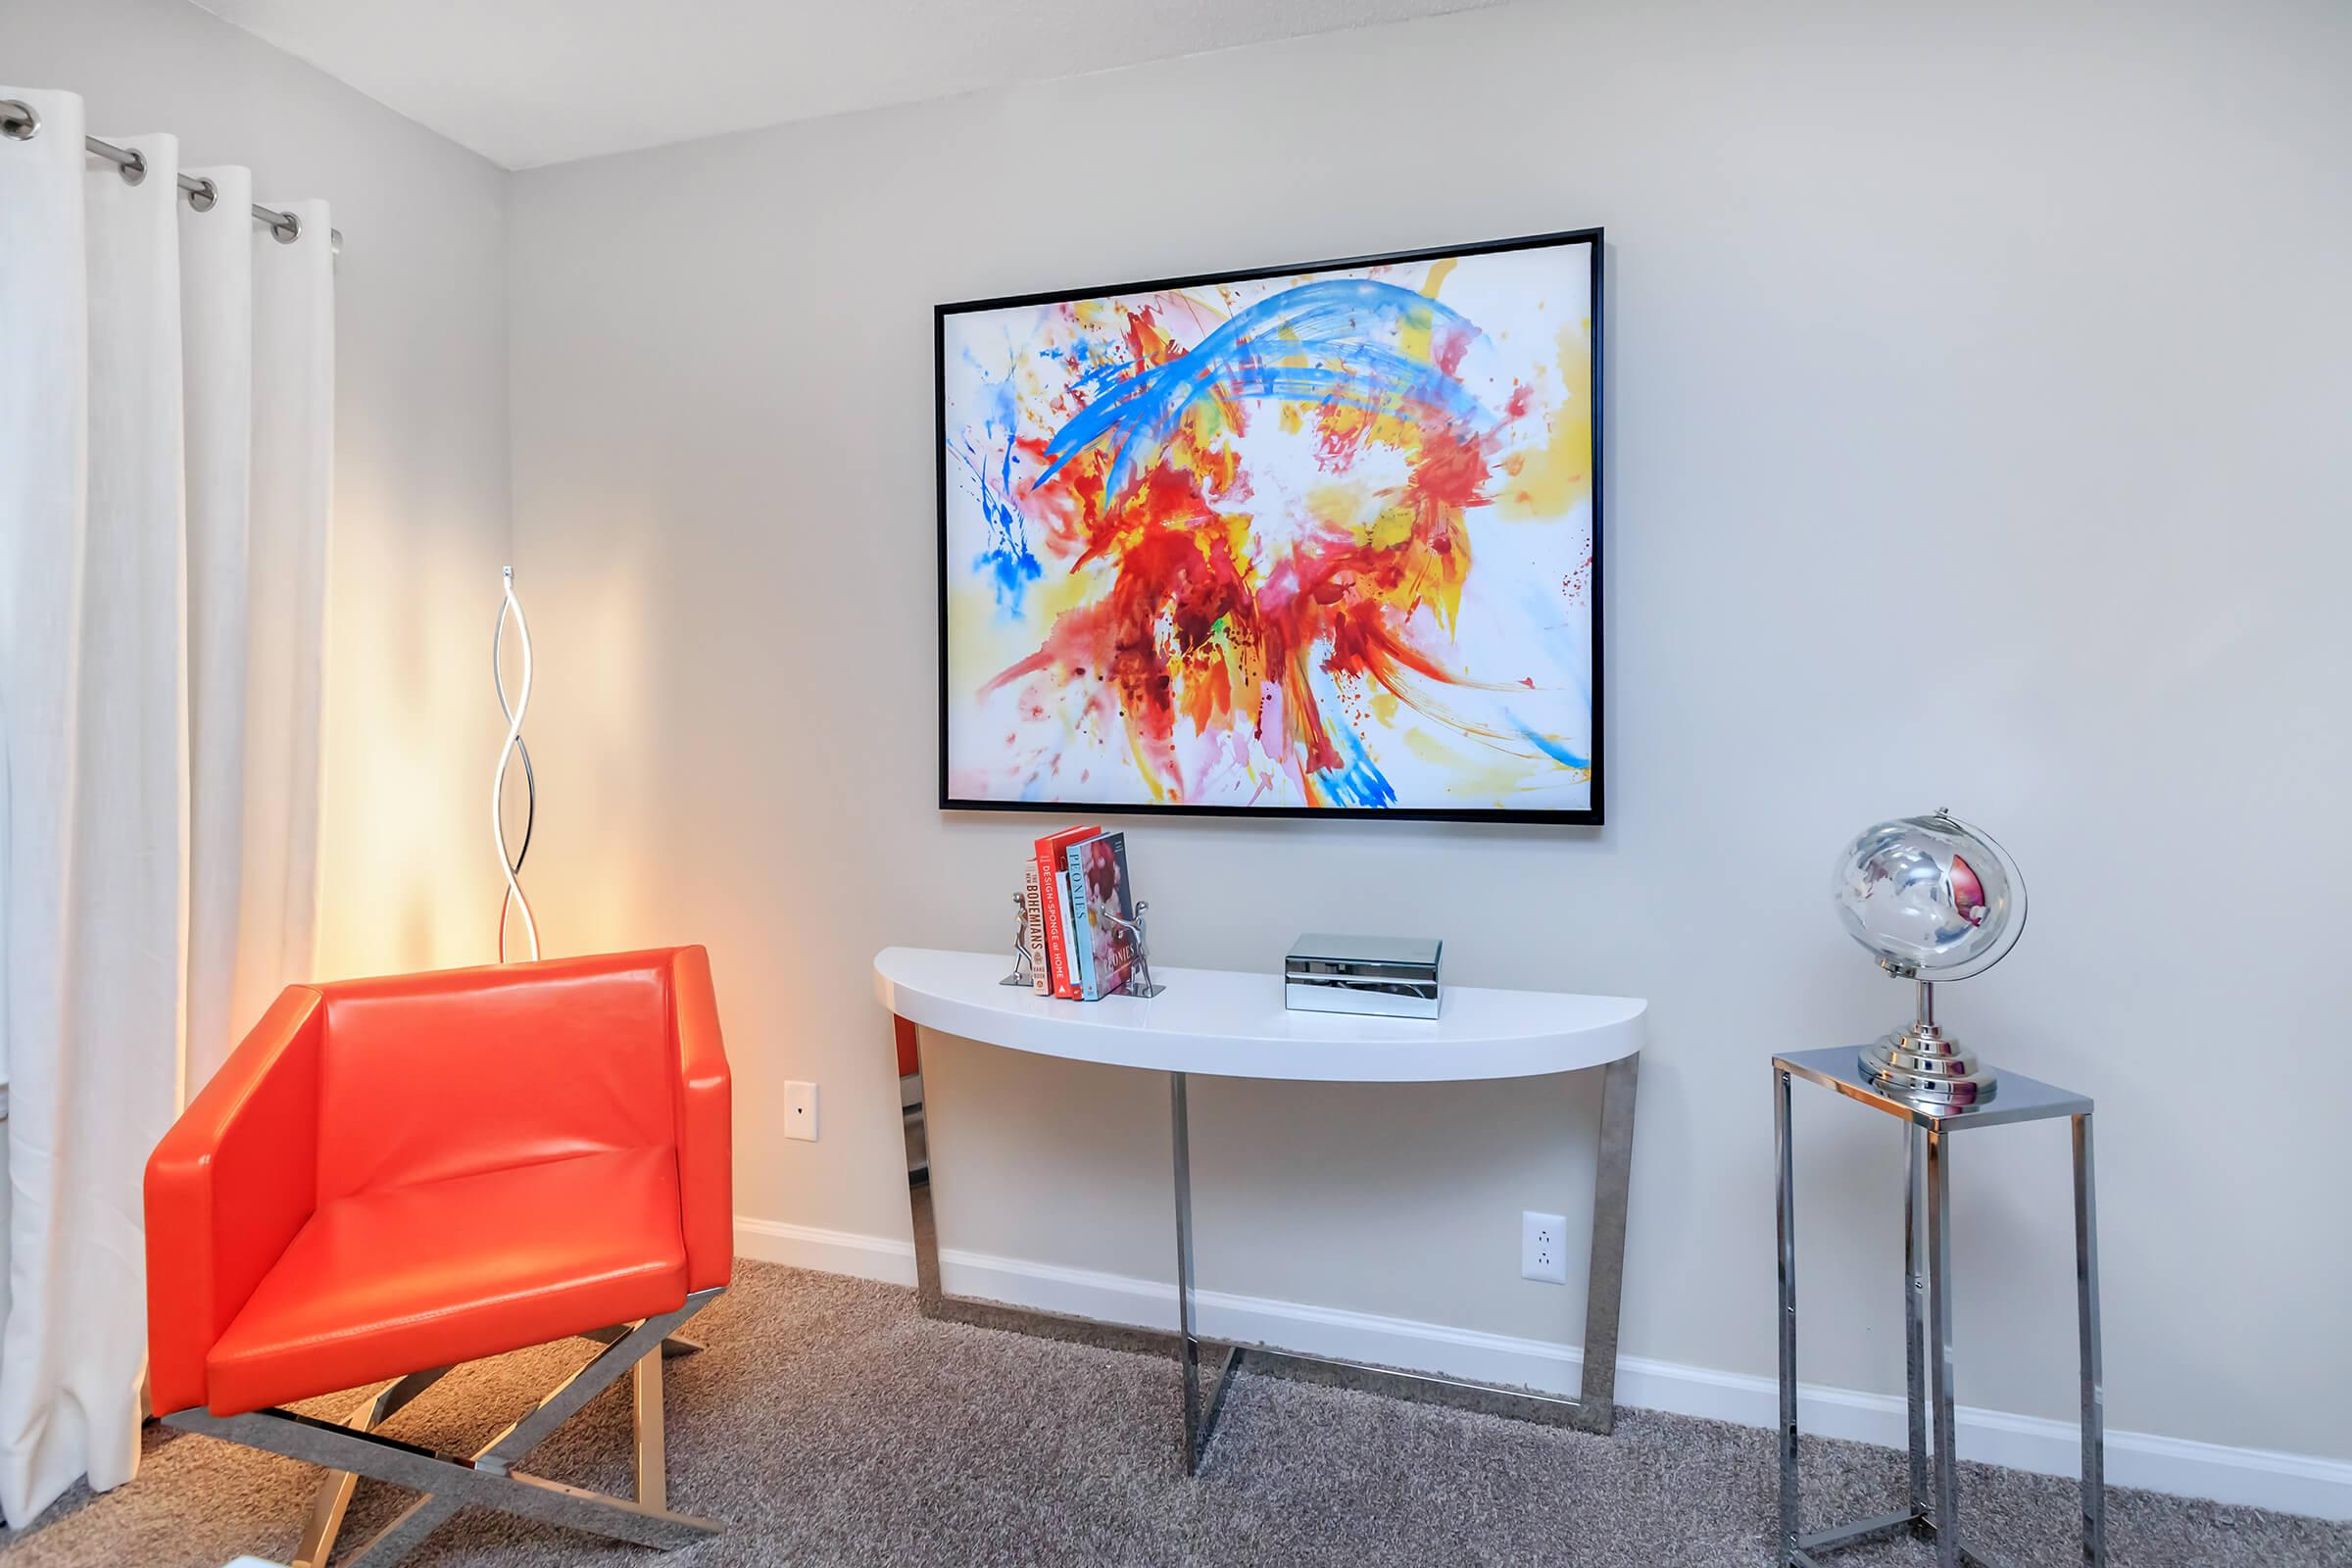 a flat screen tv sitting in a chair in a room